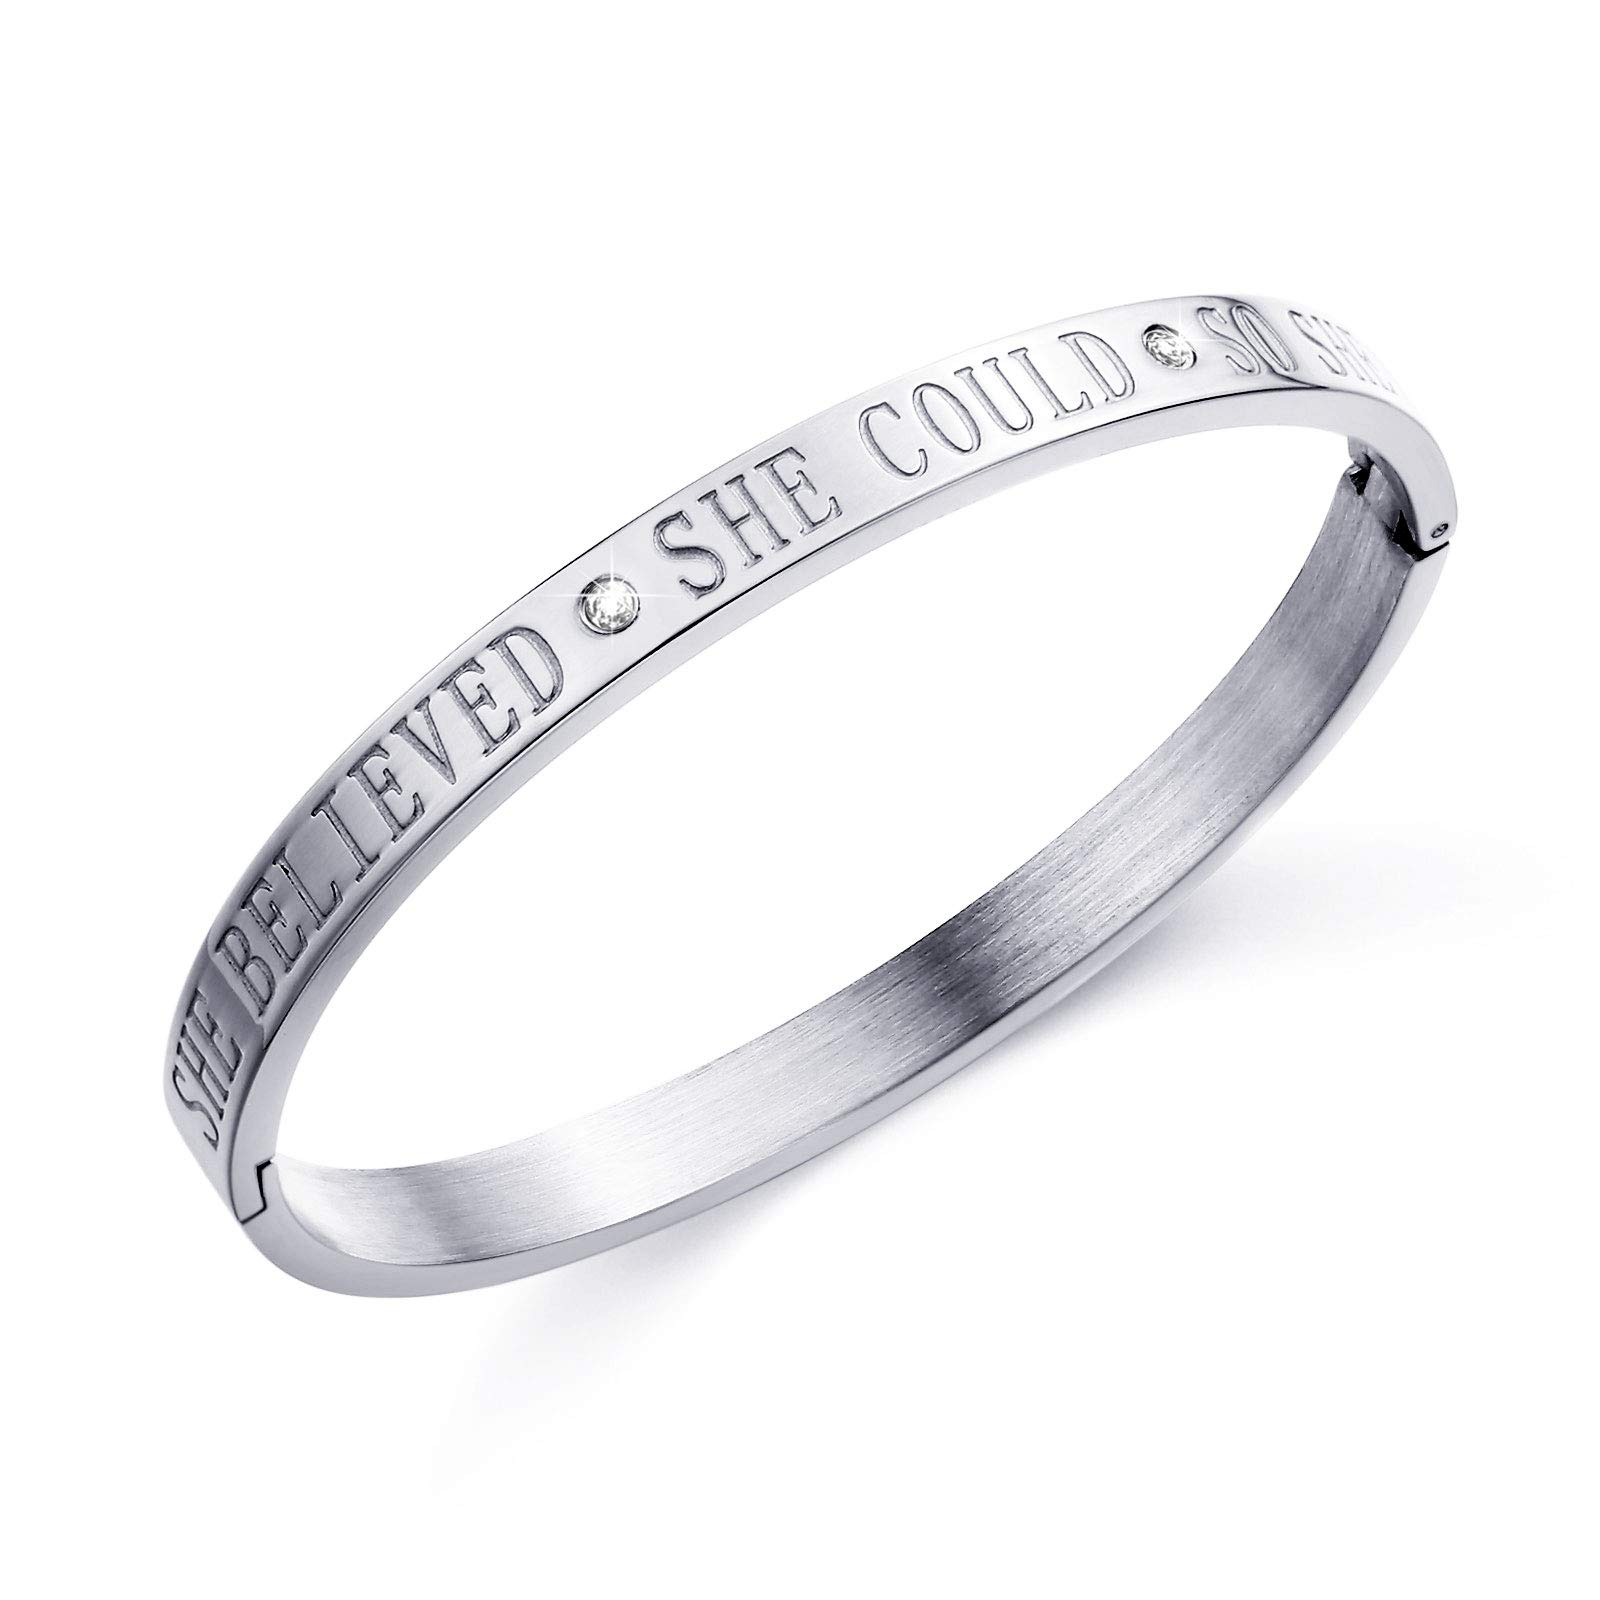 Fullrainbow Diamond Inspirational Bangle Bracelets for Women Teens Silver Engraved Cuff Bracelet She Believed She Could So She Did (Silver)